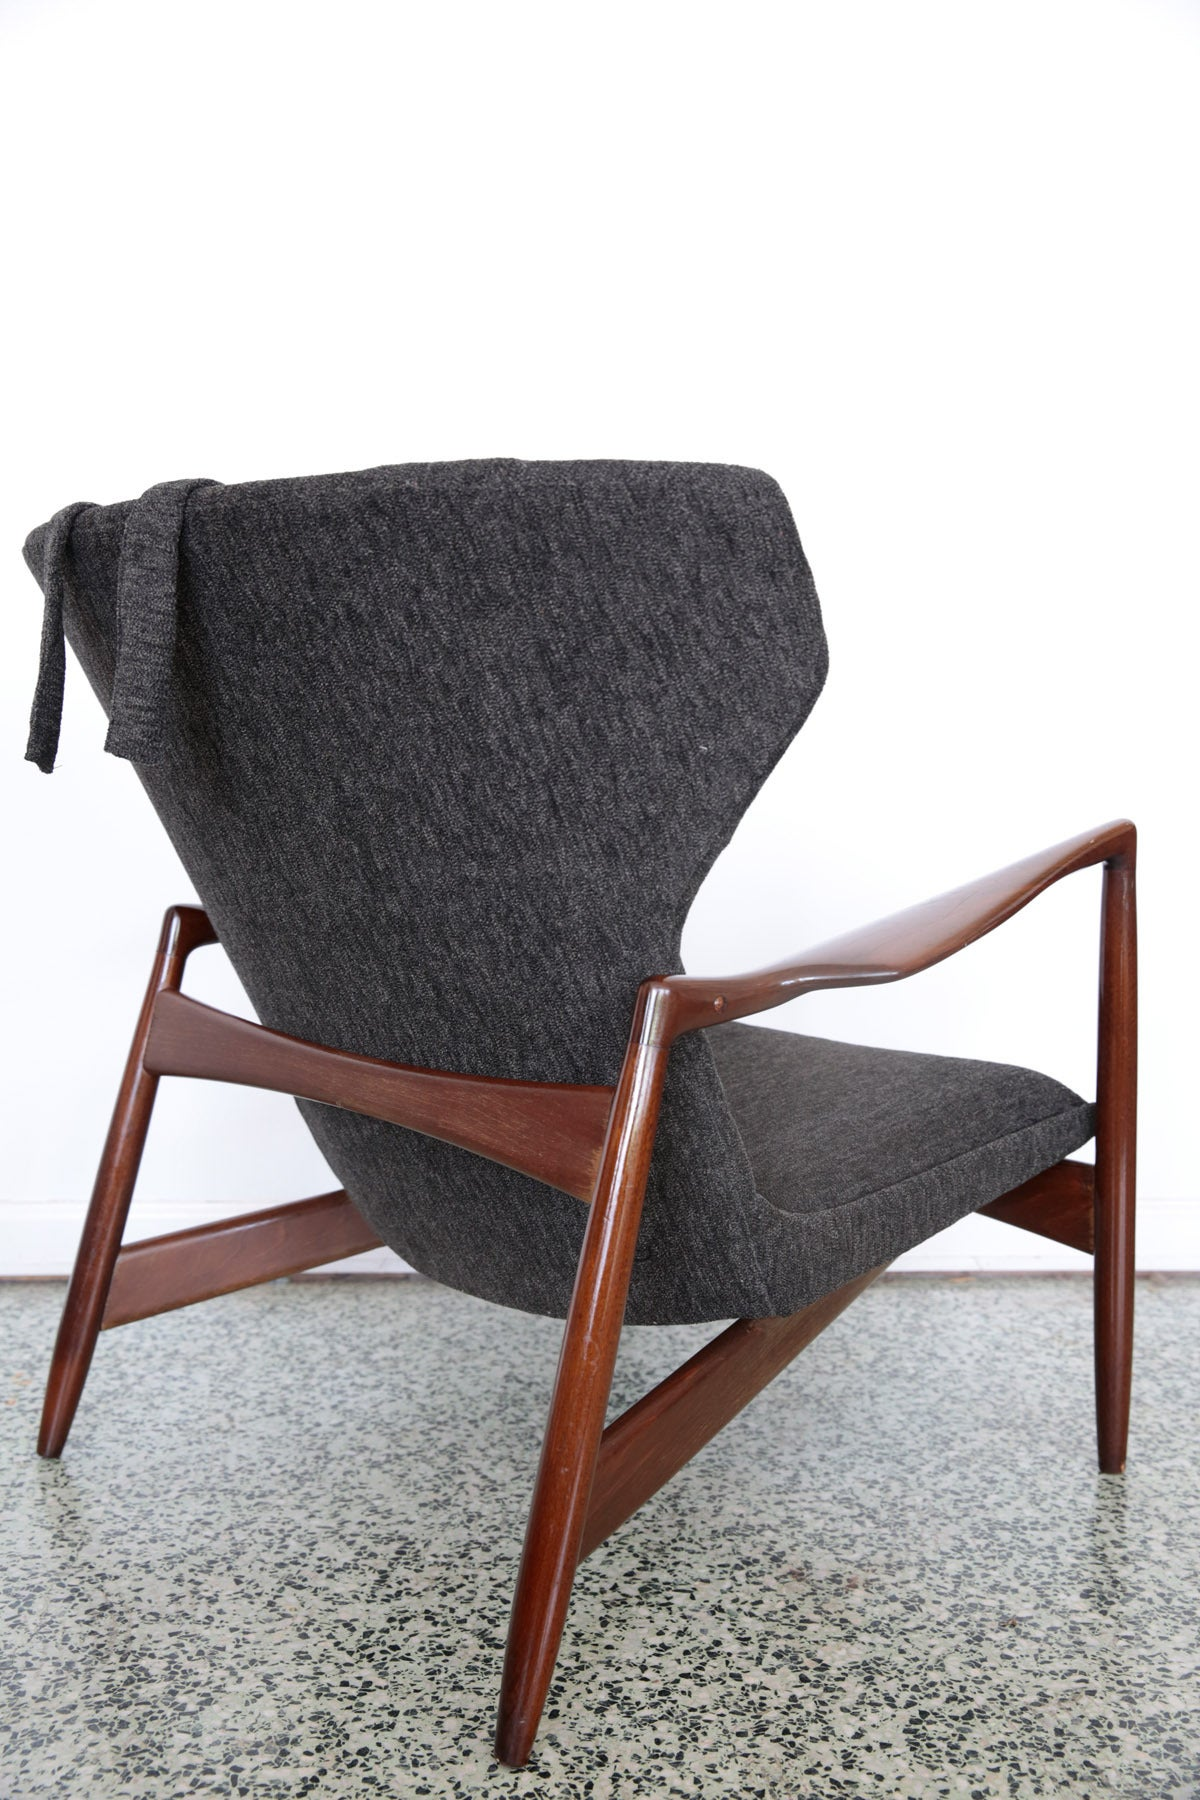 Kofod Larsen Lounge Chair for Selig at 1stdibs